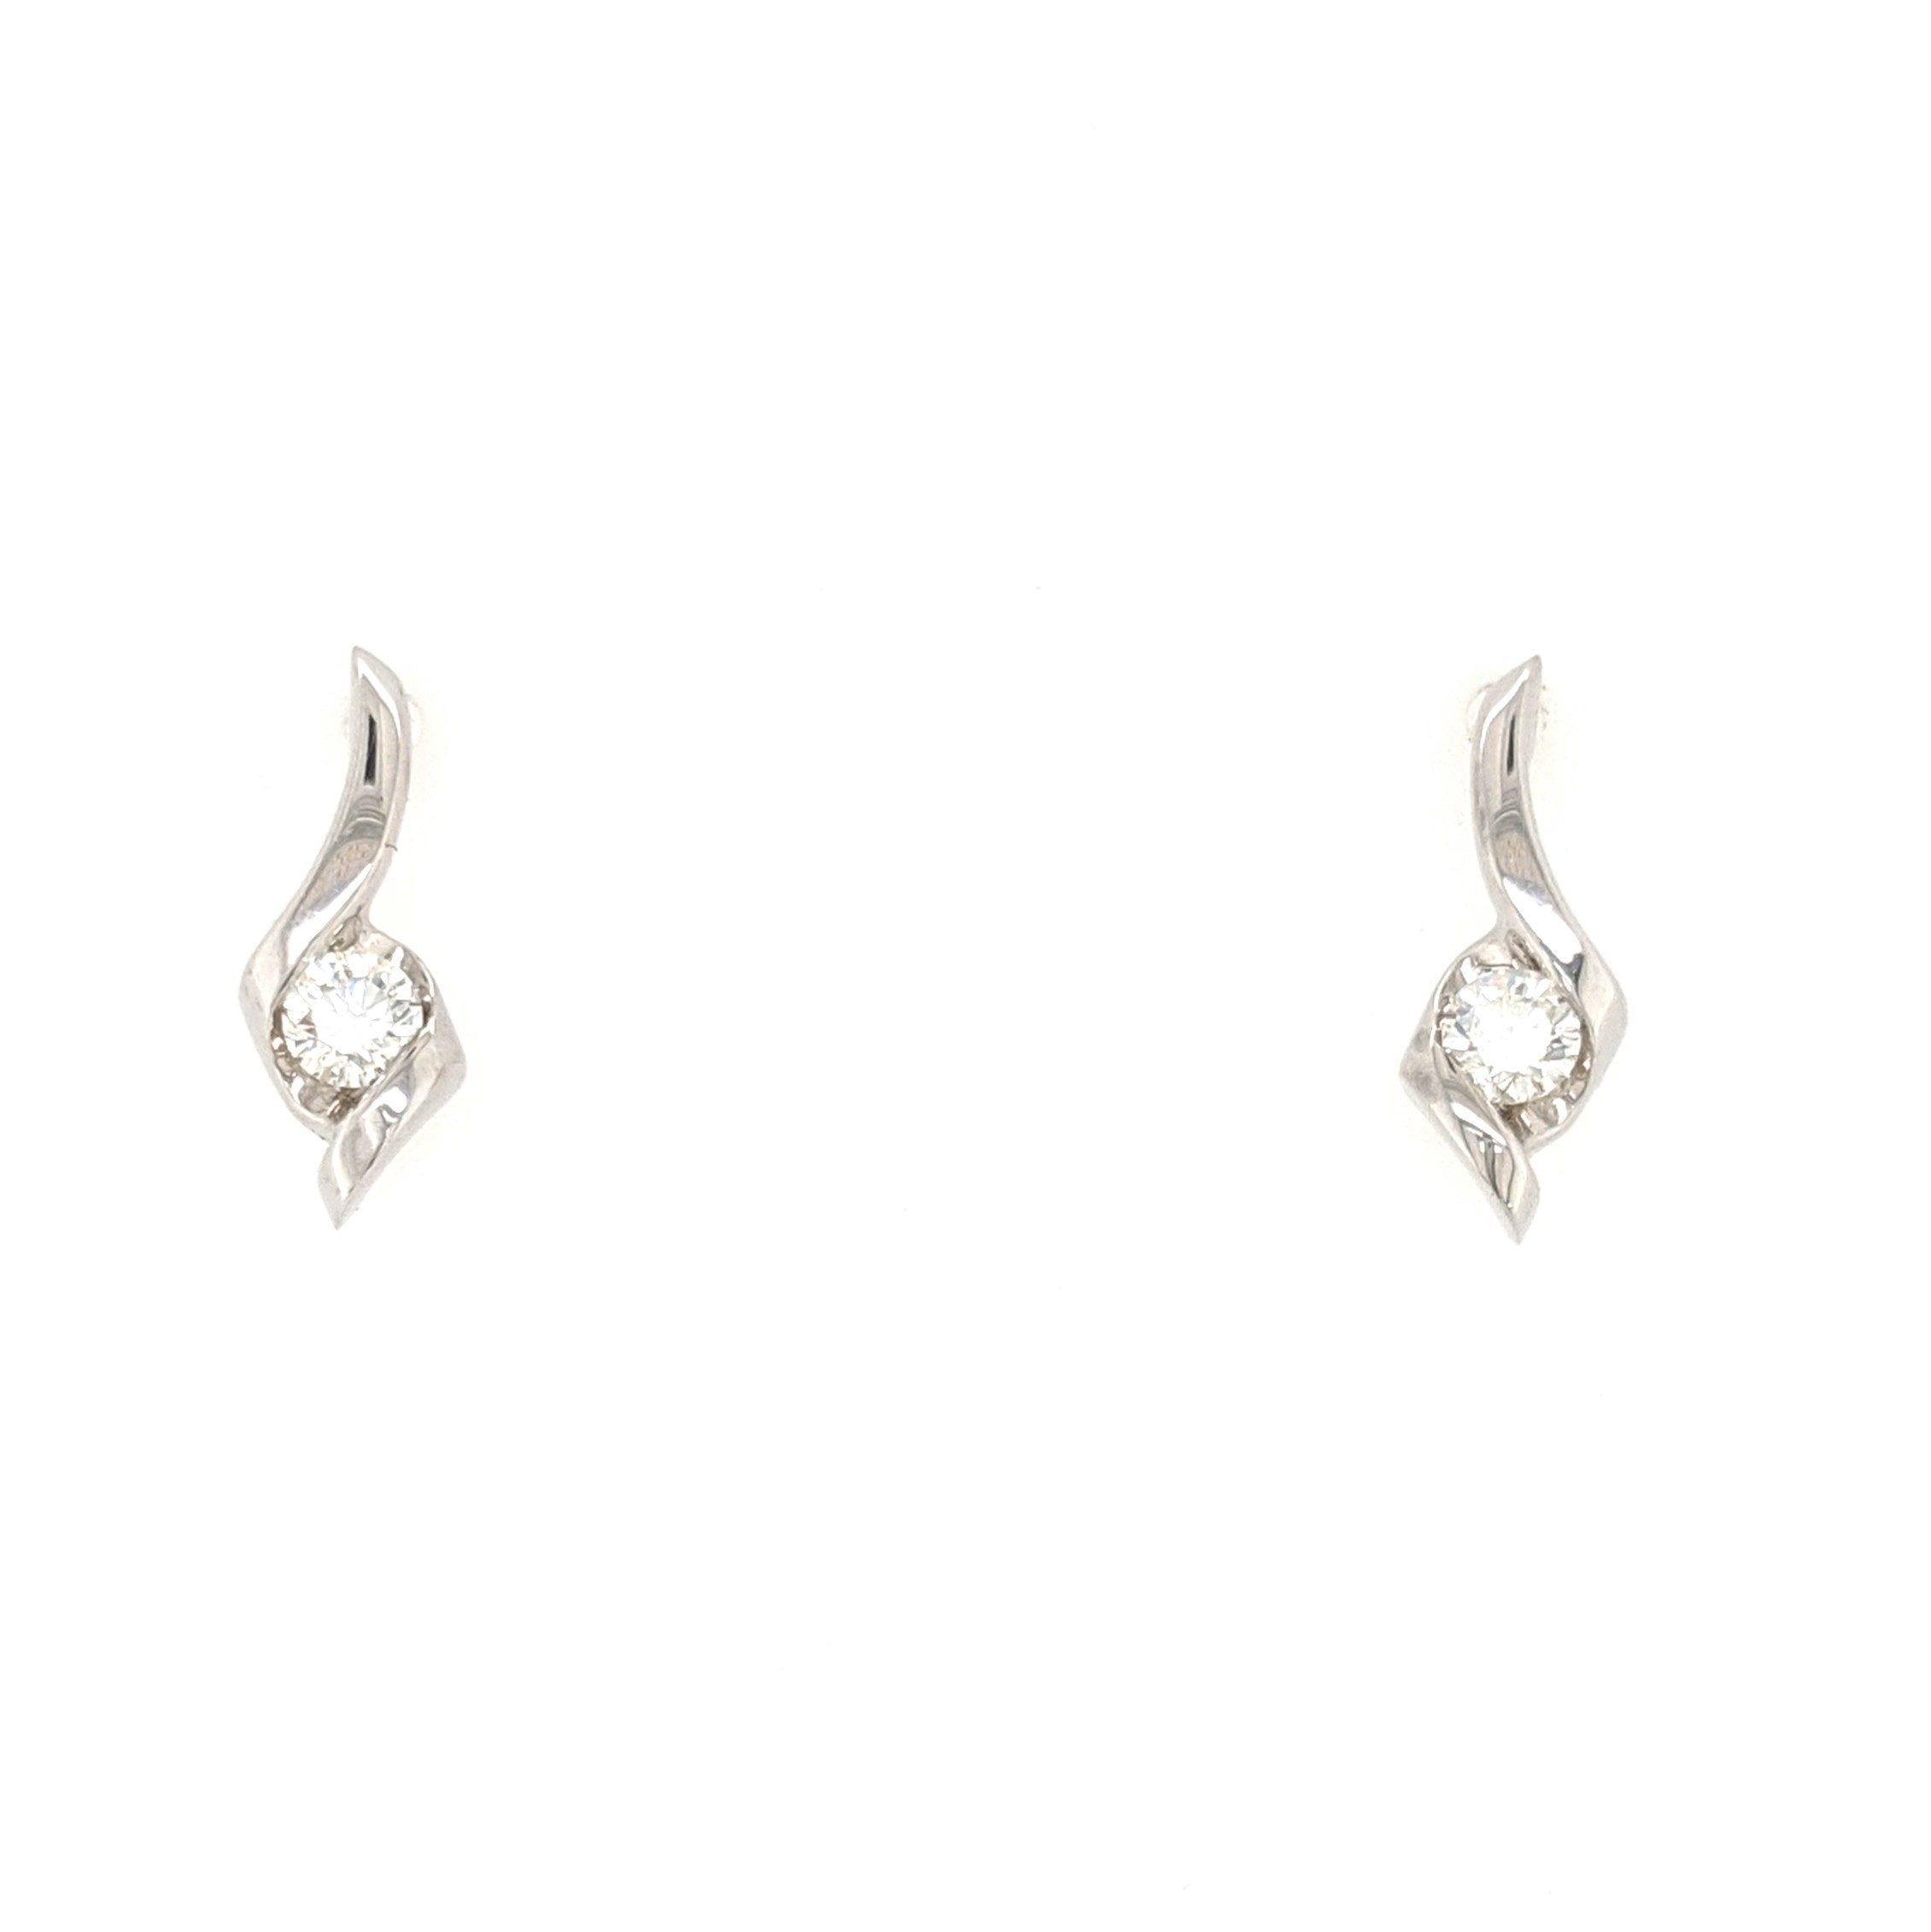 Petite Diamond Earrings